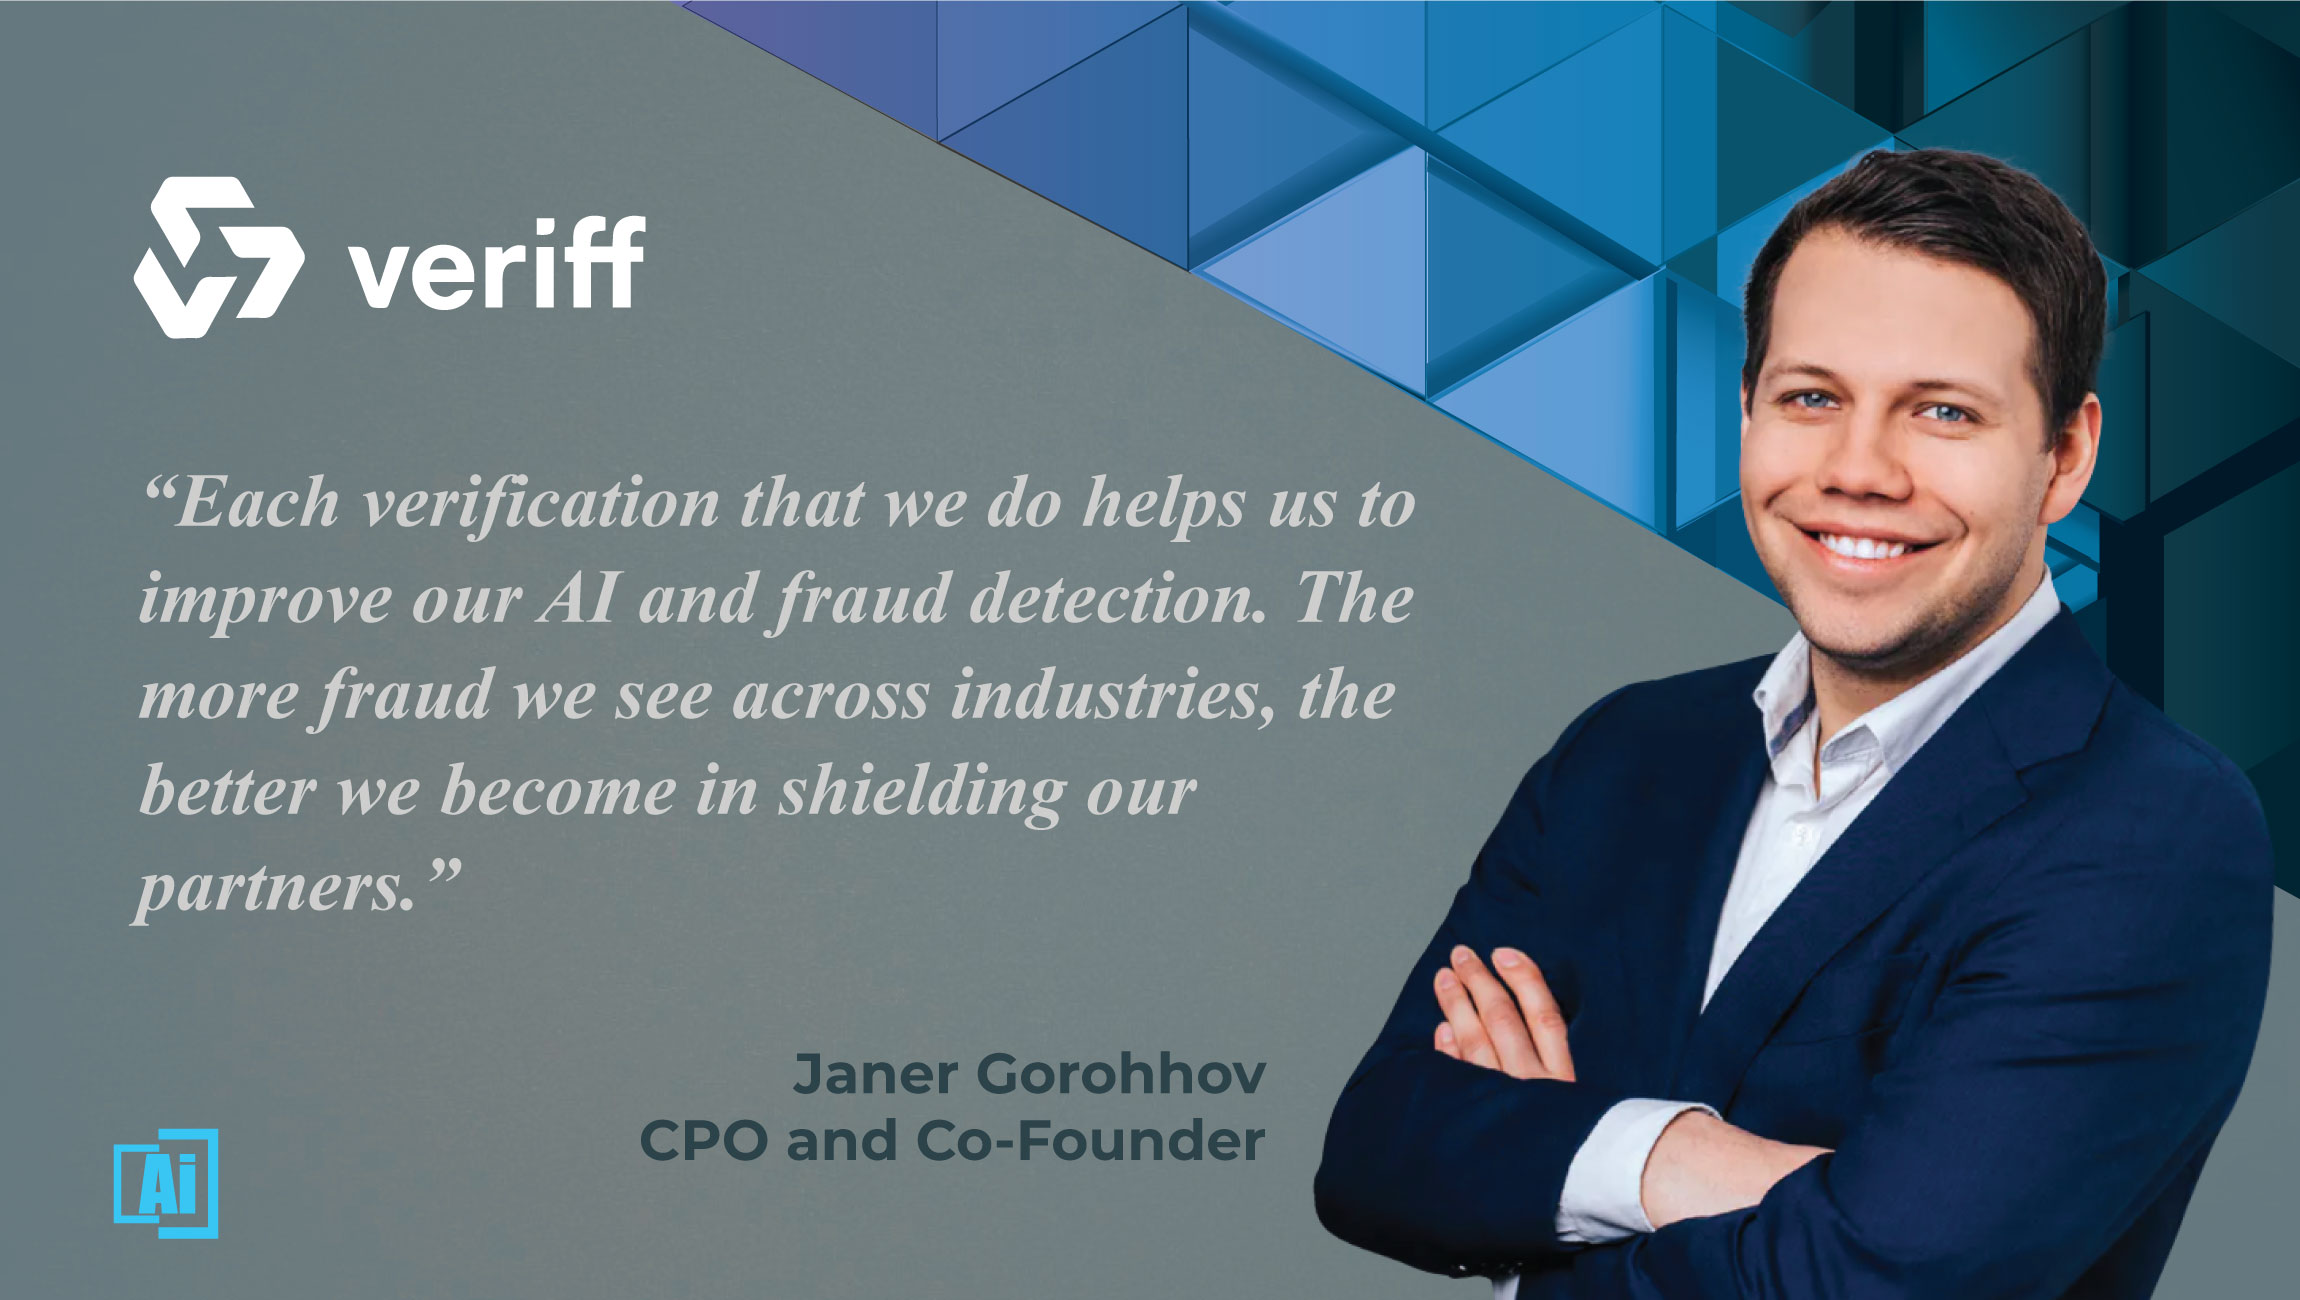 AiThority Interview with Janer Gorohhov, Co-founder and Chief Product Officer at Veriff